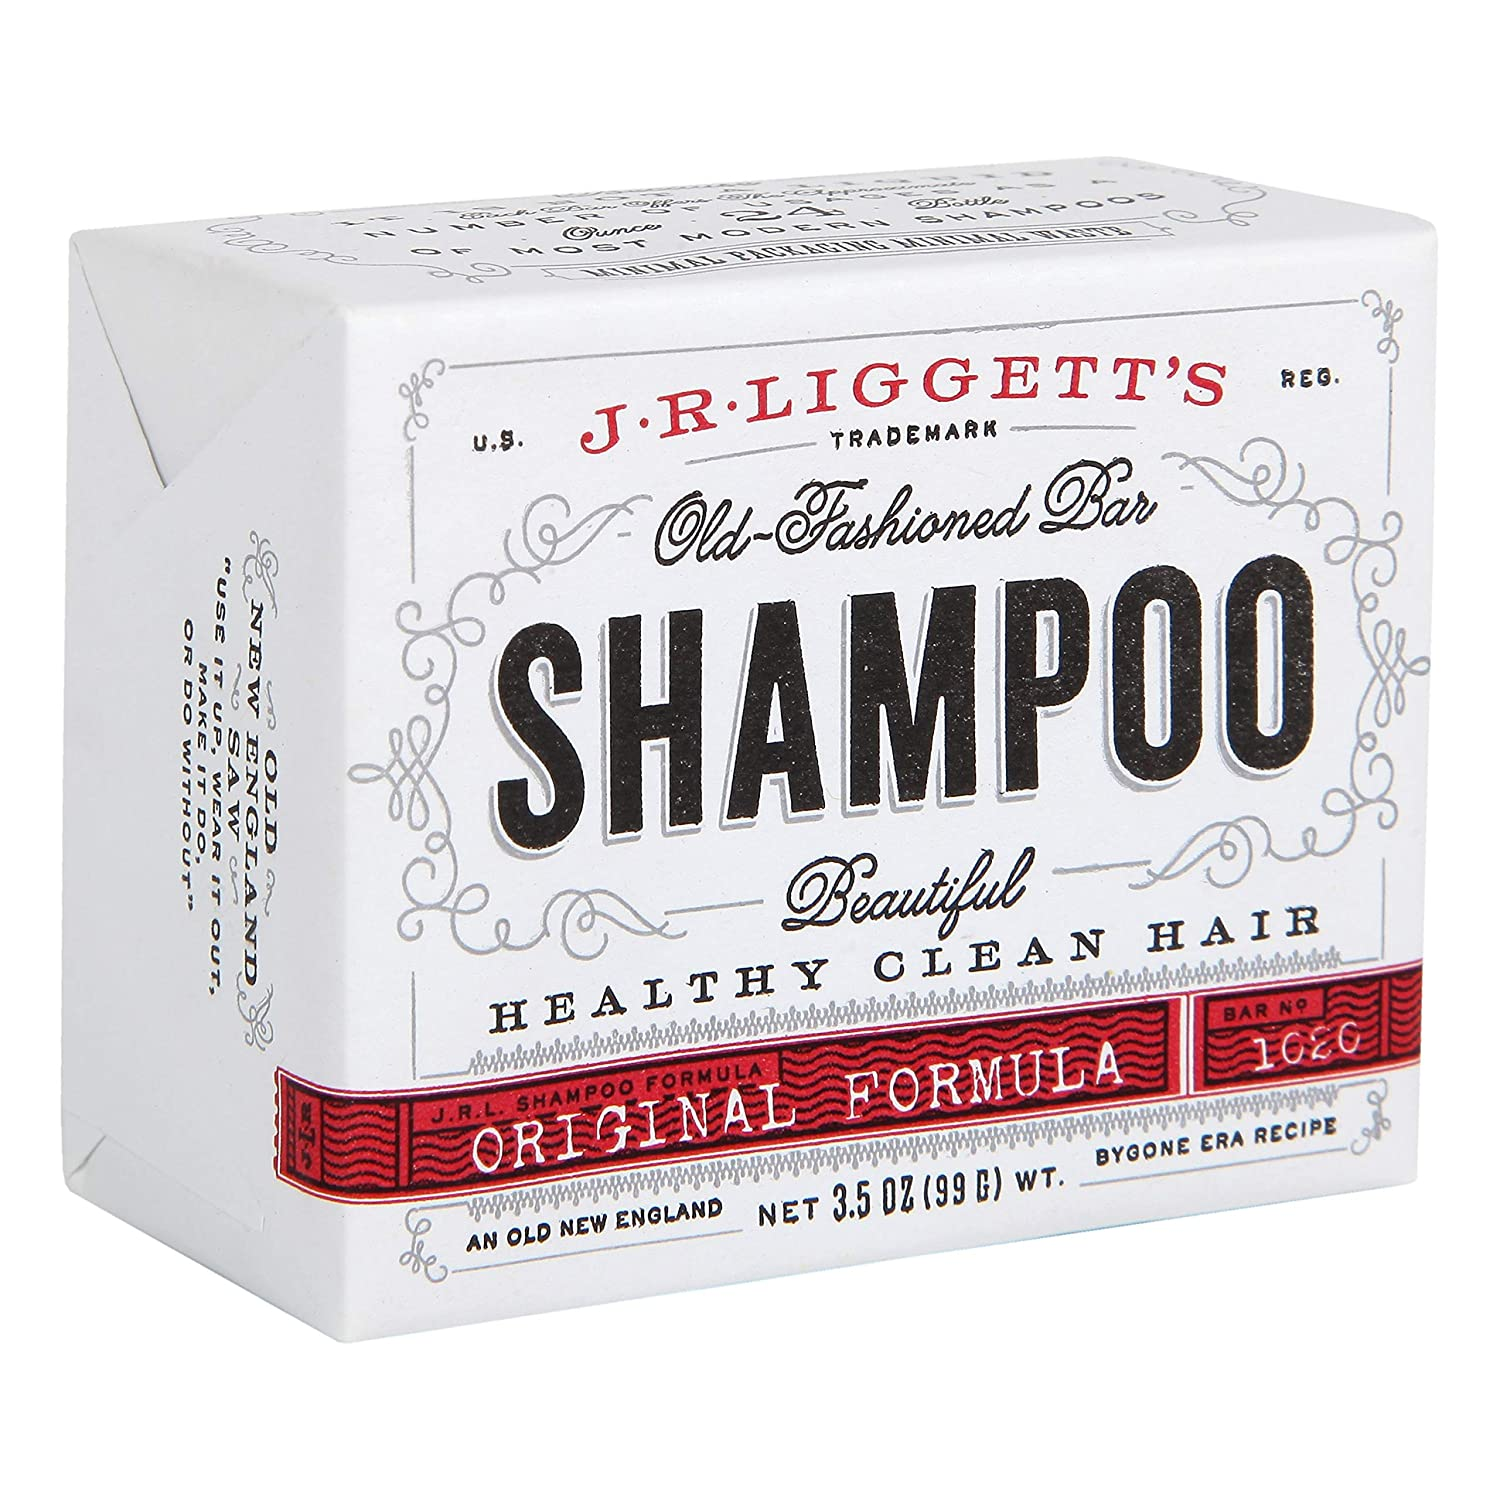 Amazon.com : J·R·LIGGETT'S All-Natural Shampoo Bar, Original Formula -  Supports Strong and Healthy Hair - Nourish Follicles with Antioxidants and  Vitamins - Detergent and Sulfate-Free, One, 3.5 Ounce Bar : Hair Shampoos :